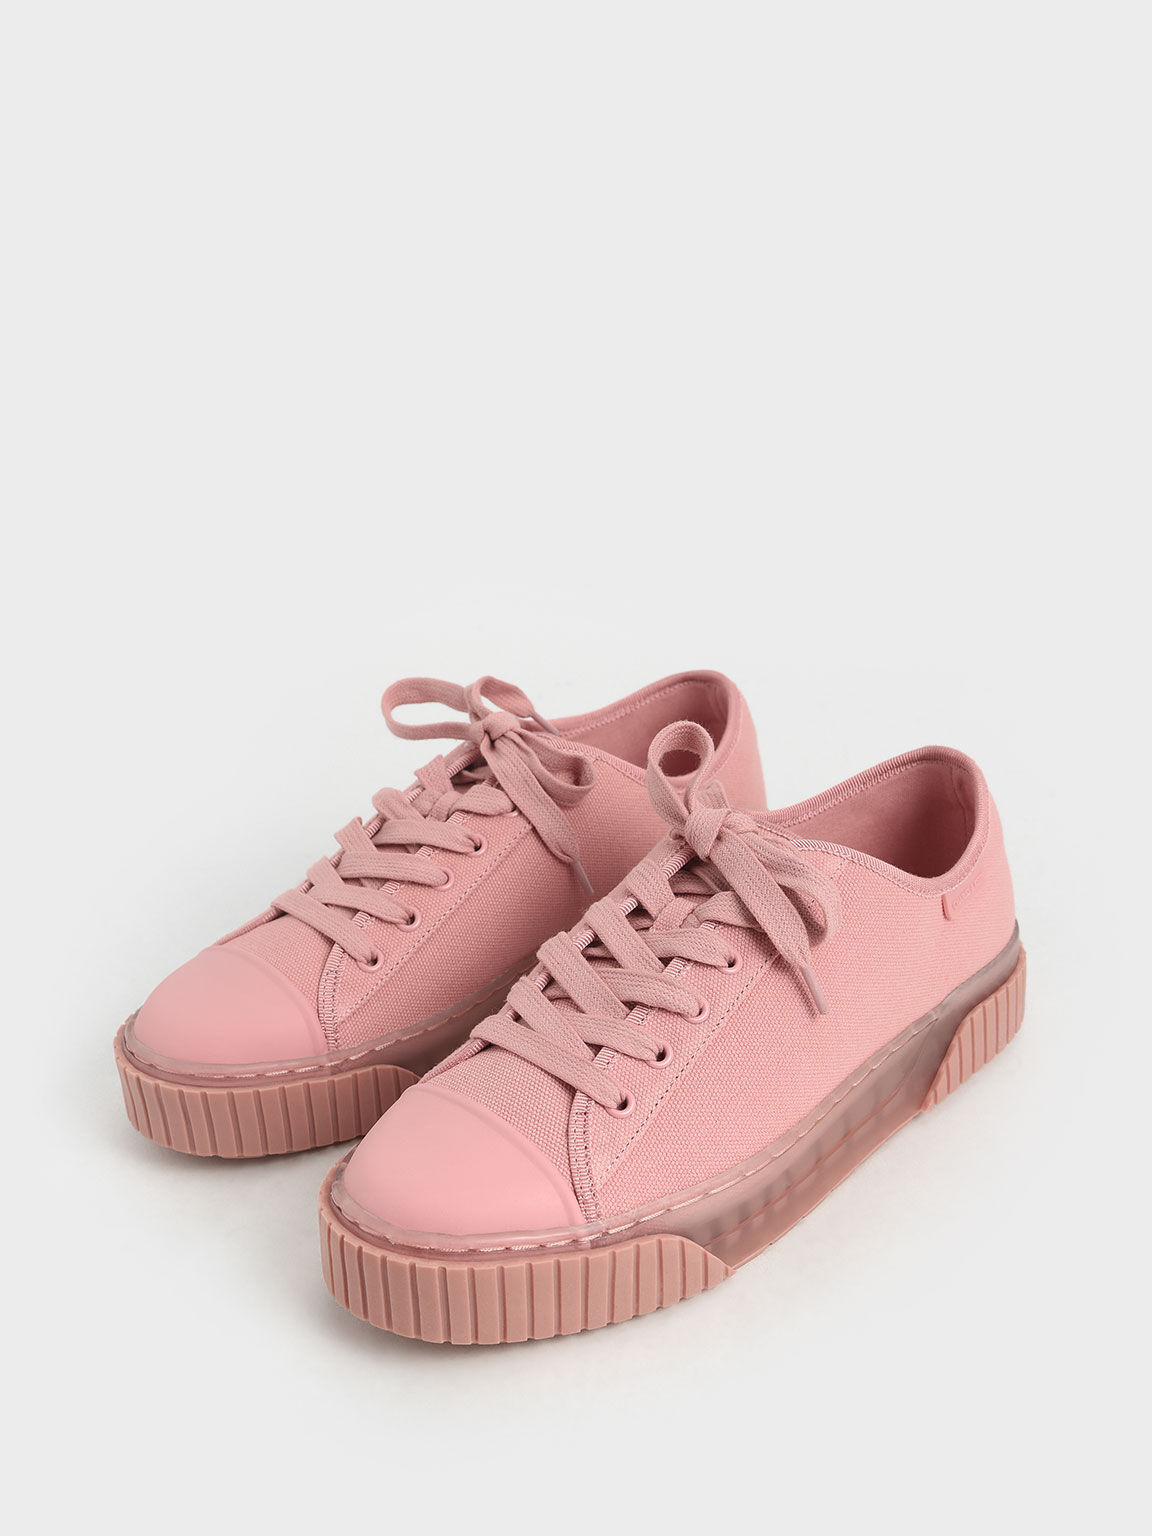 Purpose Collection 2021: Organic Cotton Platform Sneakers, Pink, hi-res